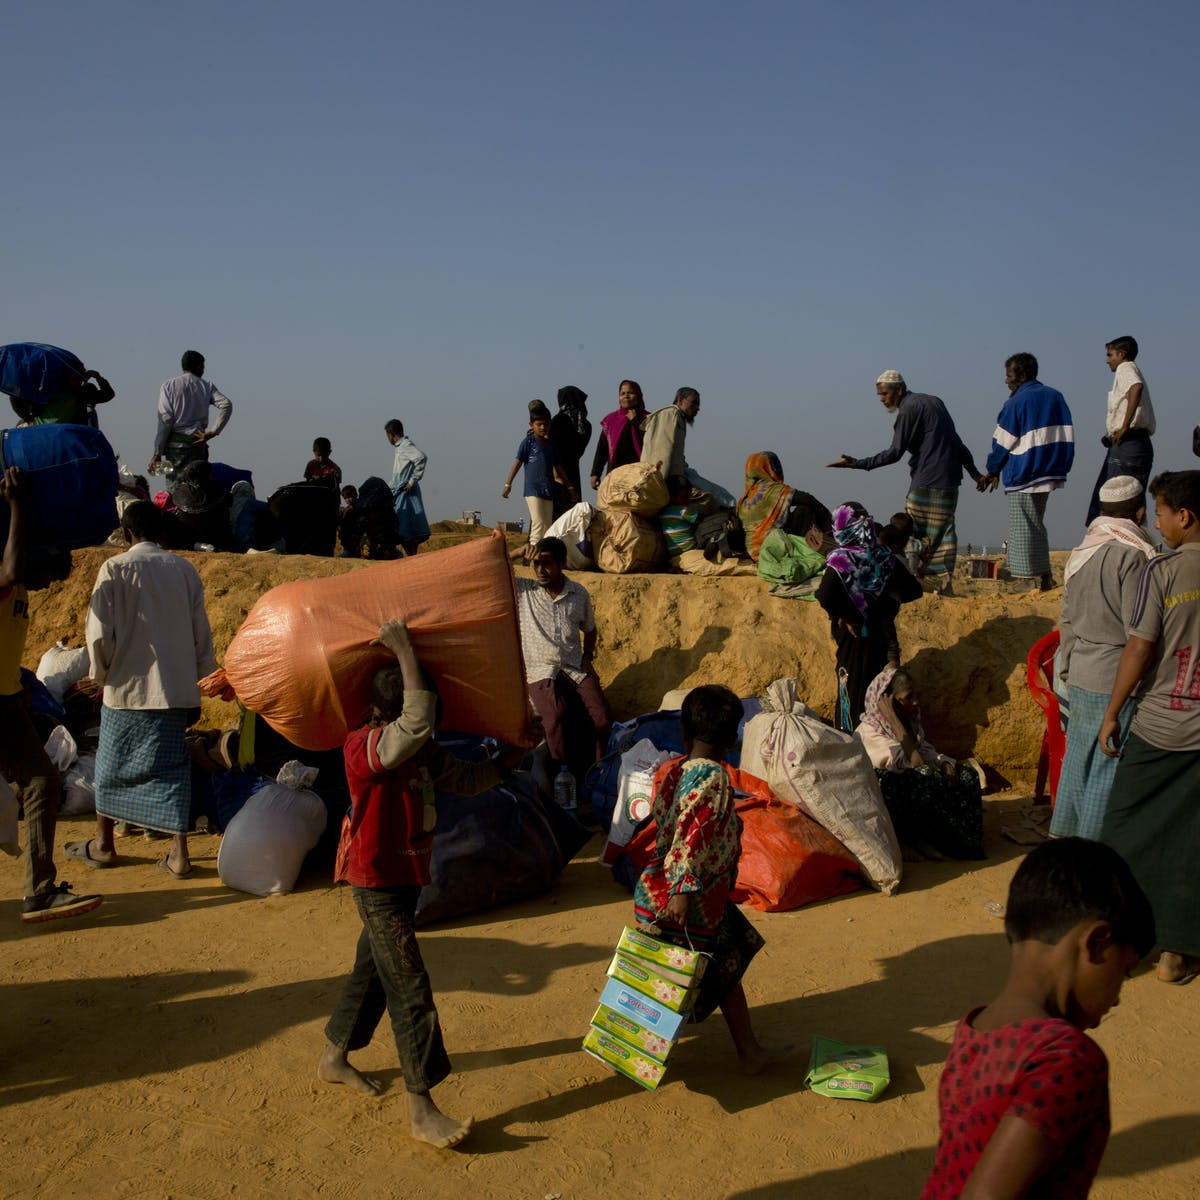 I visited the Rohingya refugee camps and here is what